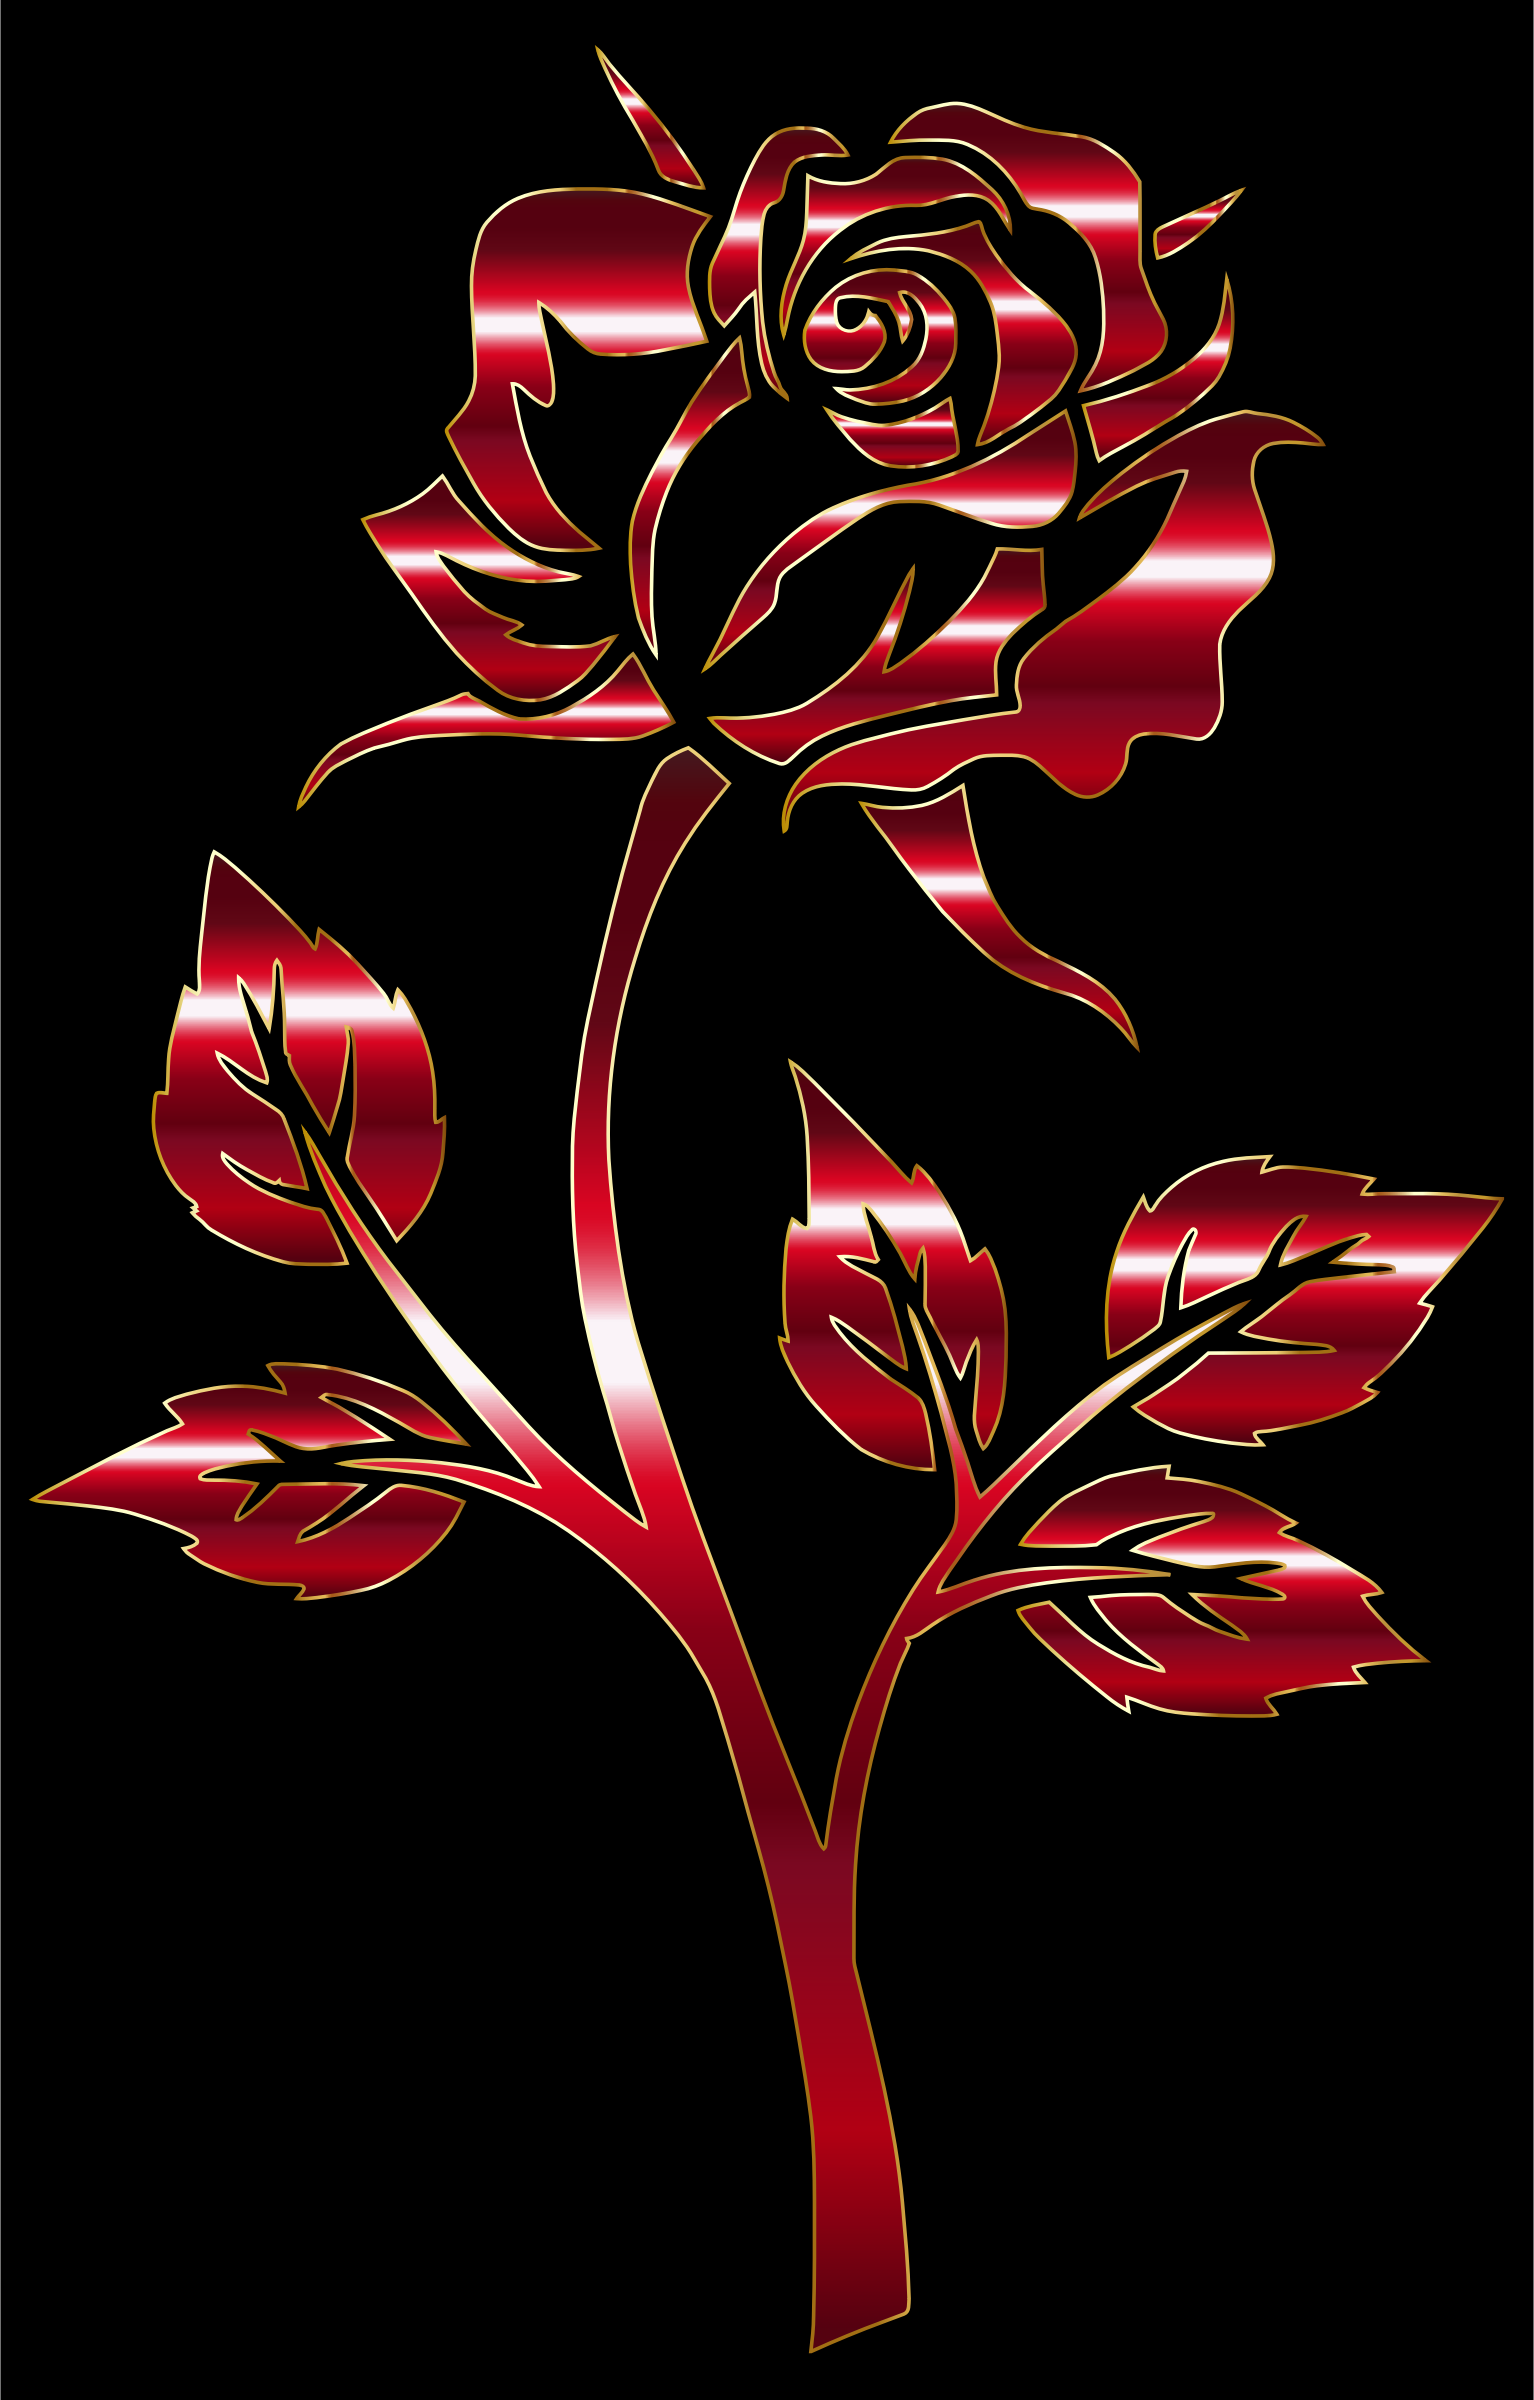 Crimson Rose Silhouette Variation 2 by GDJ